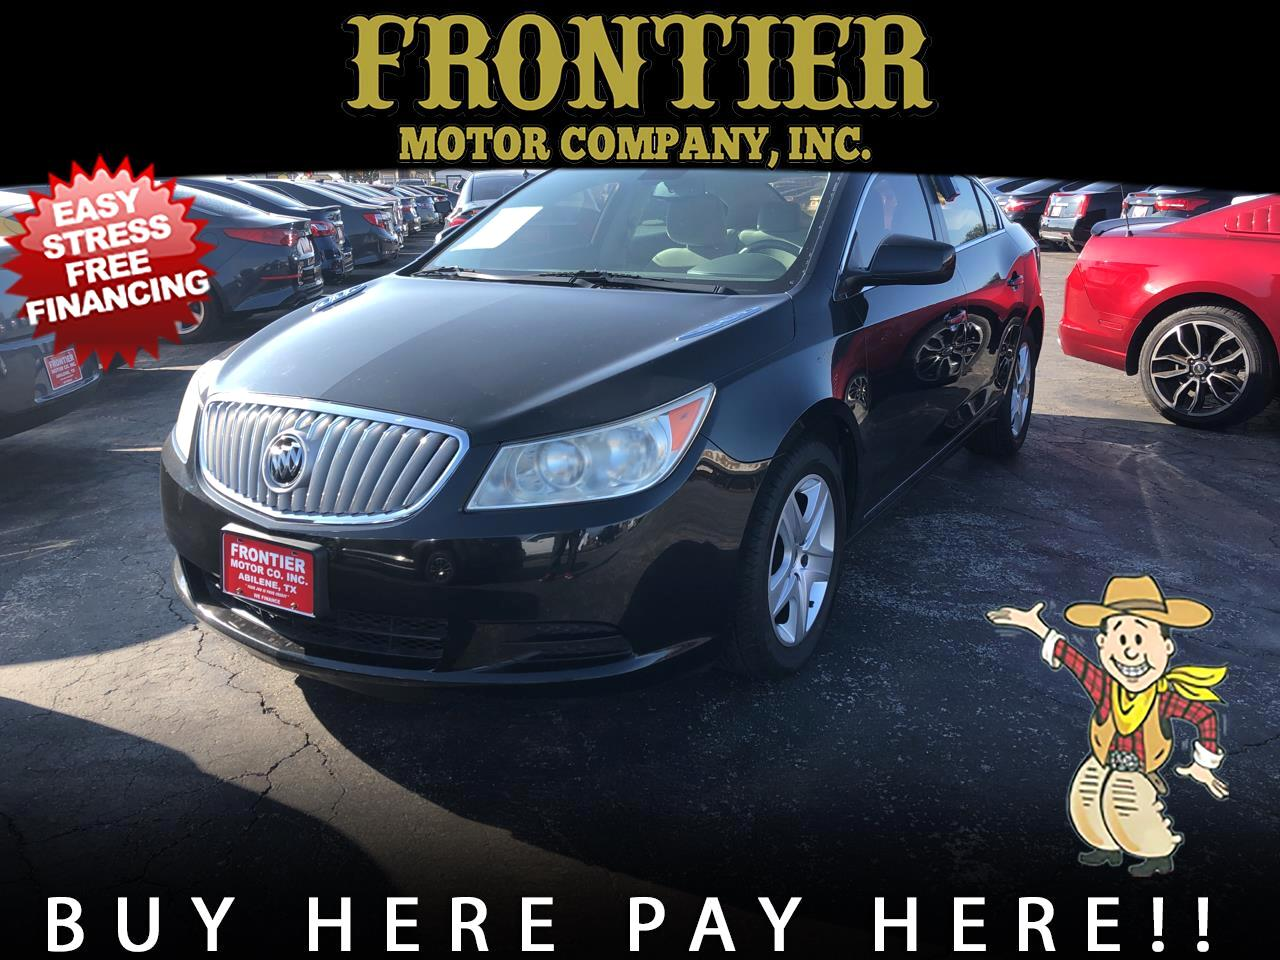 used cars for sale abilene tx 79605 frontier motor company inc used cars for sale abilene tx 79605